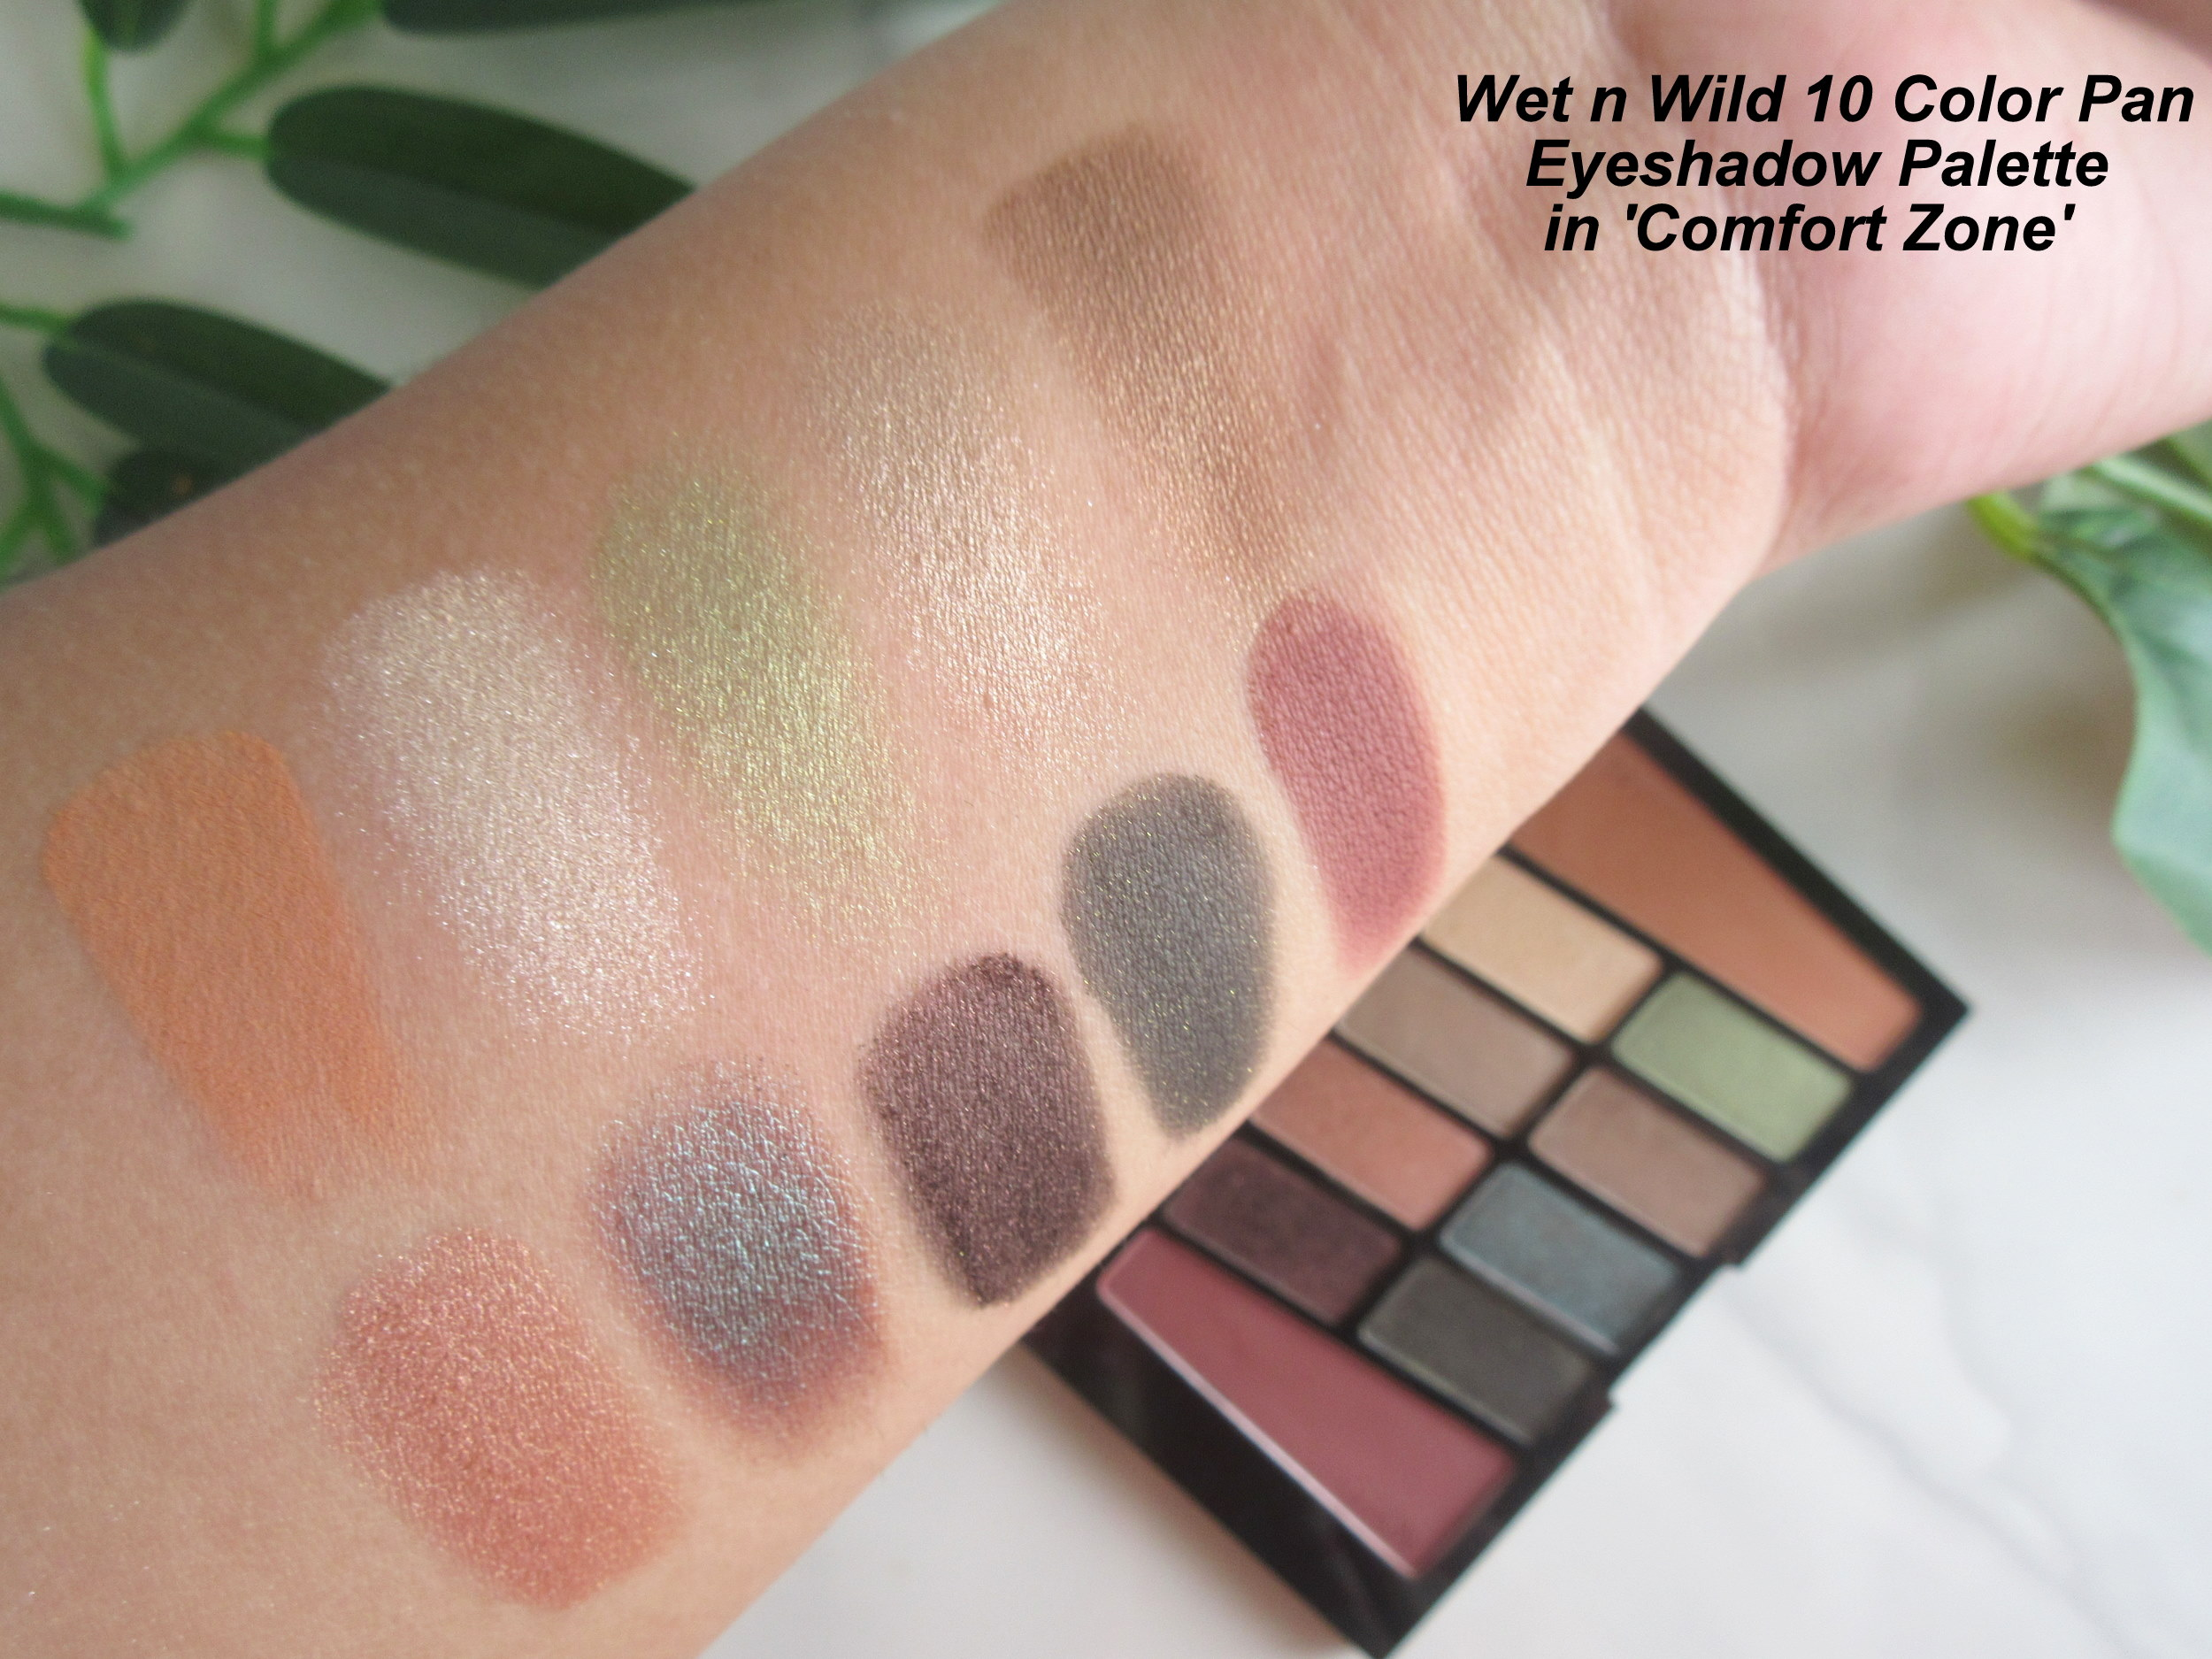 wet n wild color icon 10 pan eyeshadow palette, wet n wild color icon 10 pan eyeshadow palette rose in the air, wet n wild color icon 10 pan eyeshadow palette comfort zone